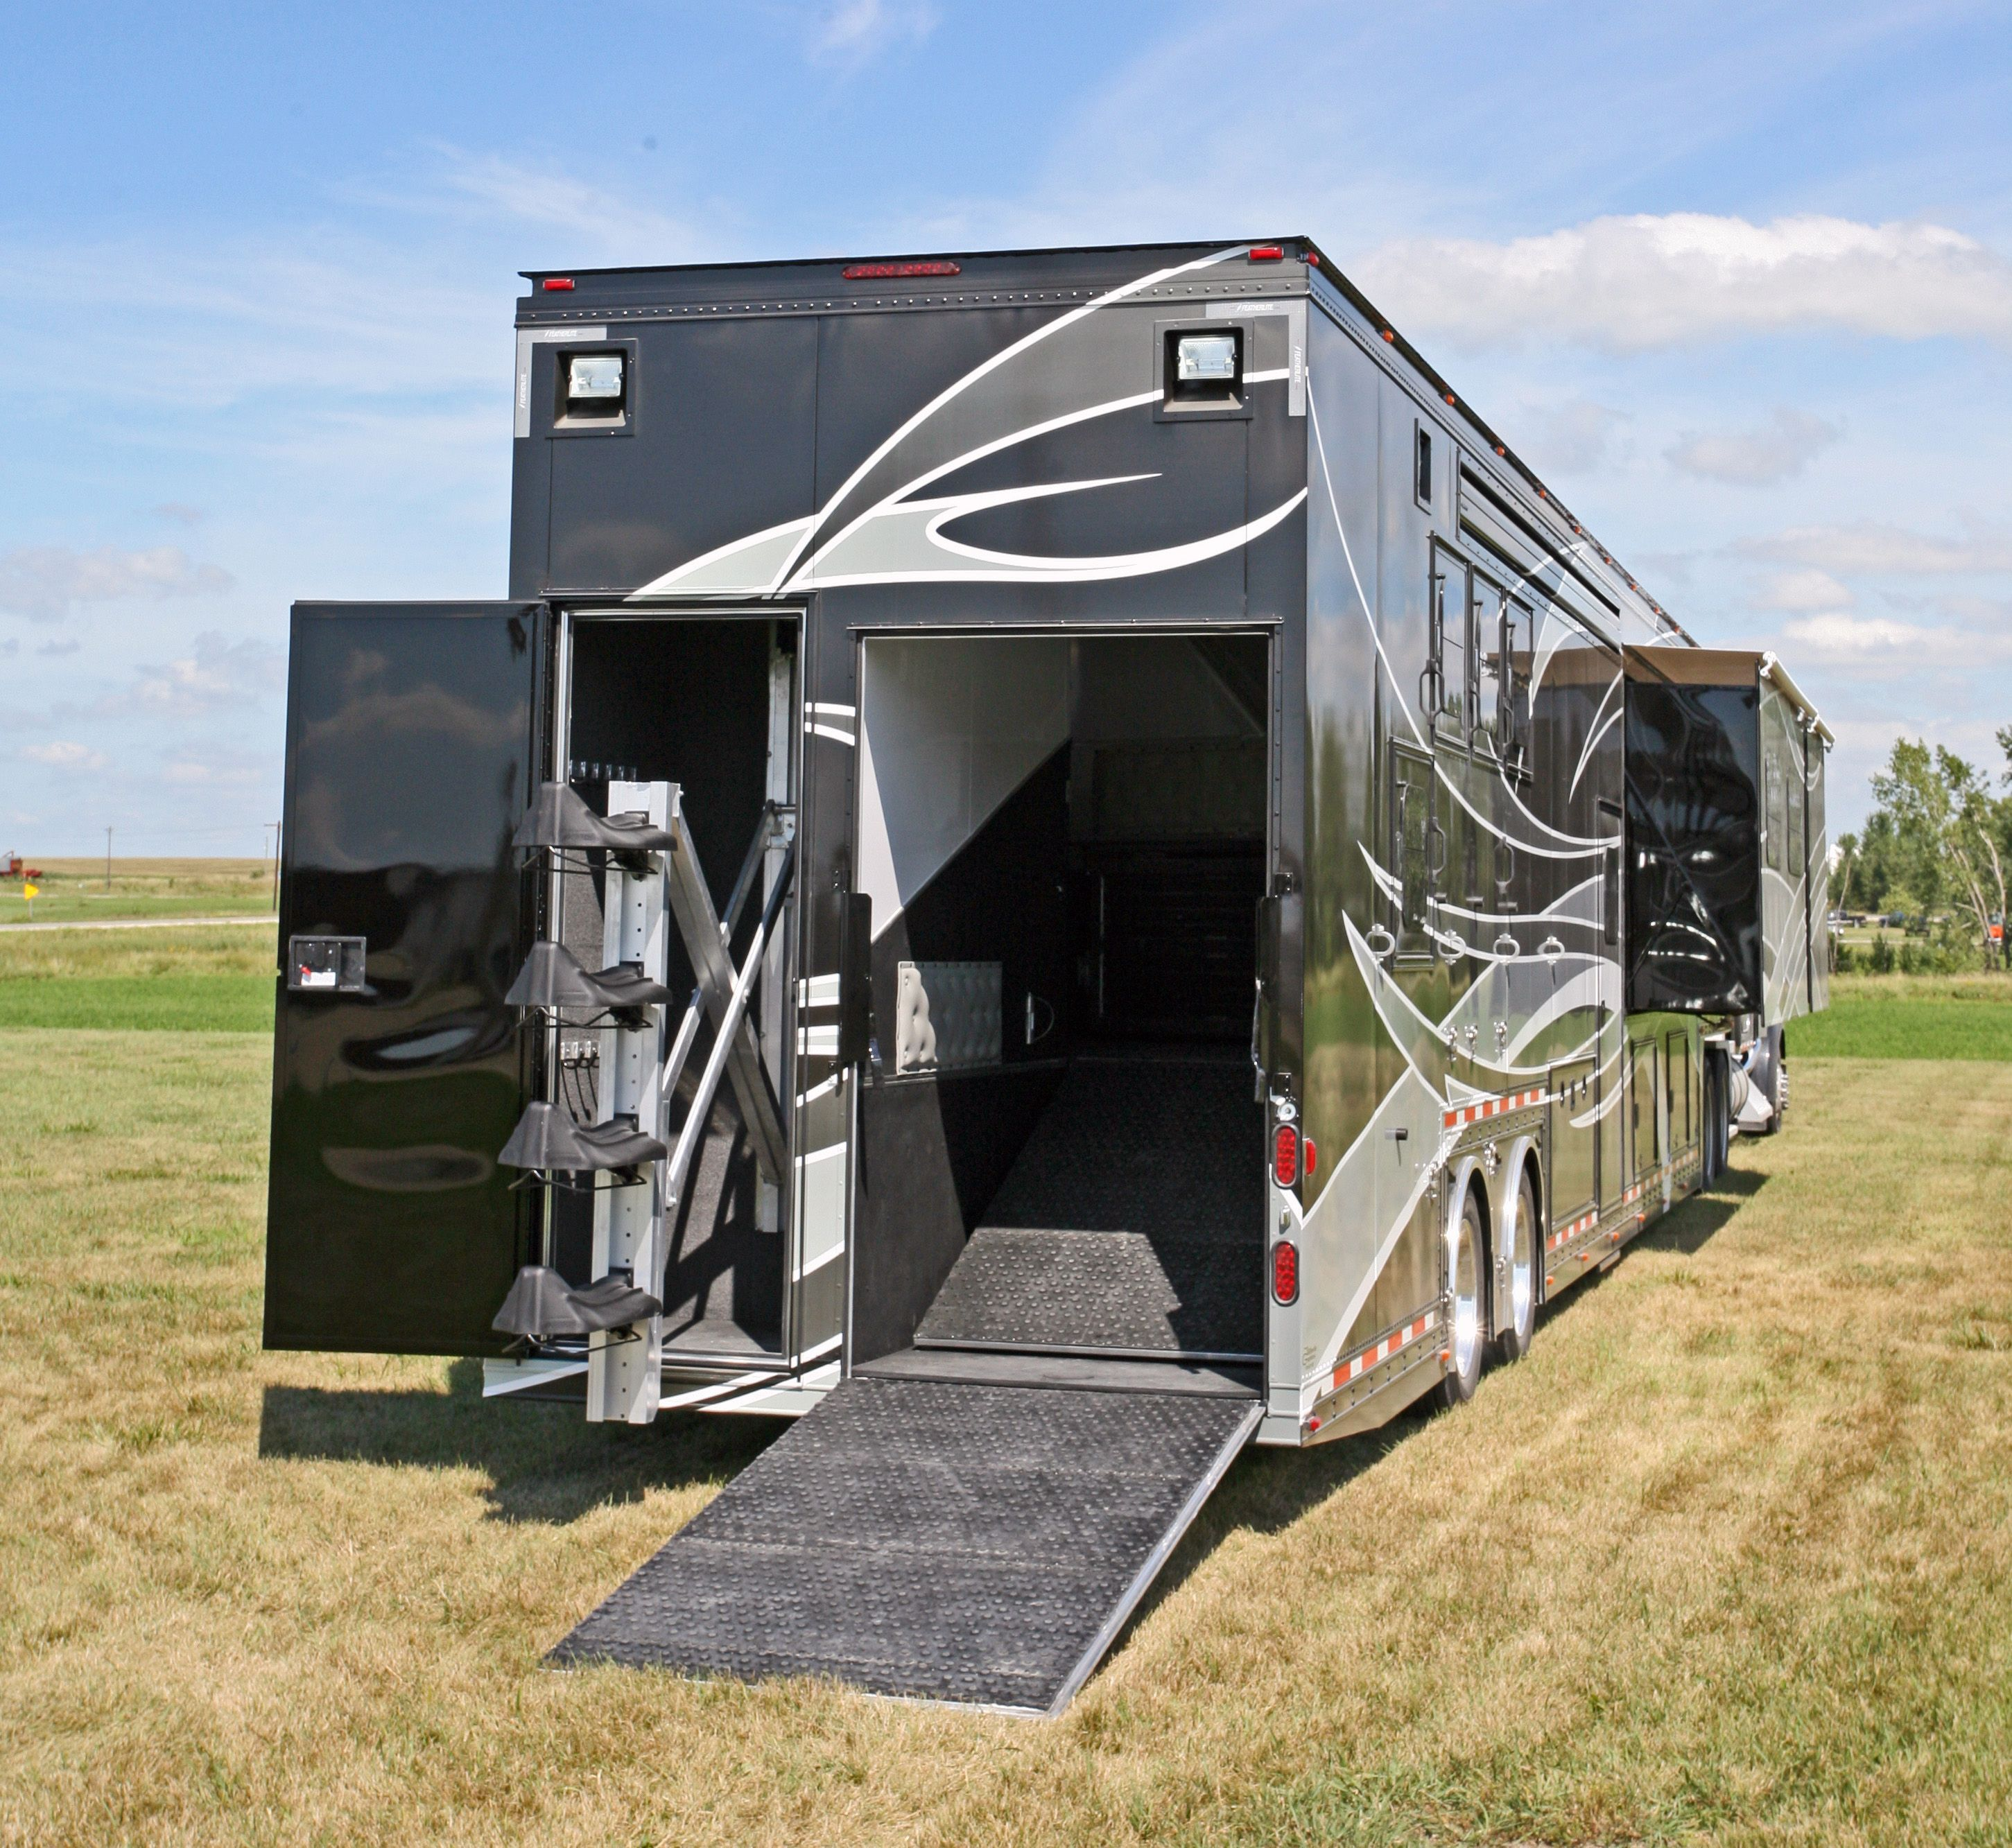 This Horse Trailer Model Featherlite Has Massive Luxury Living Quarters With Four Slide Outs That D Horse Trailers Horse Trailer Horse Trailer Living Quarters